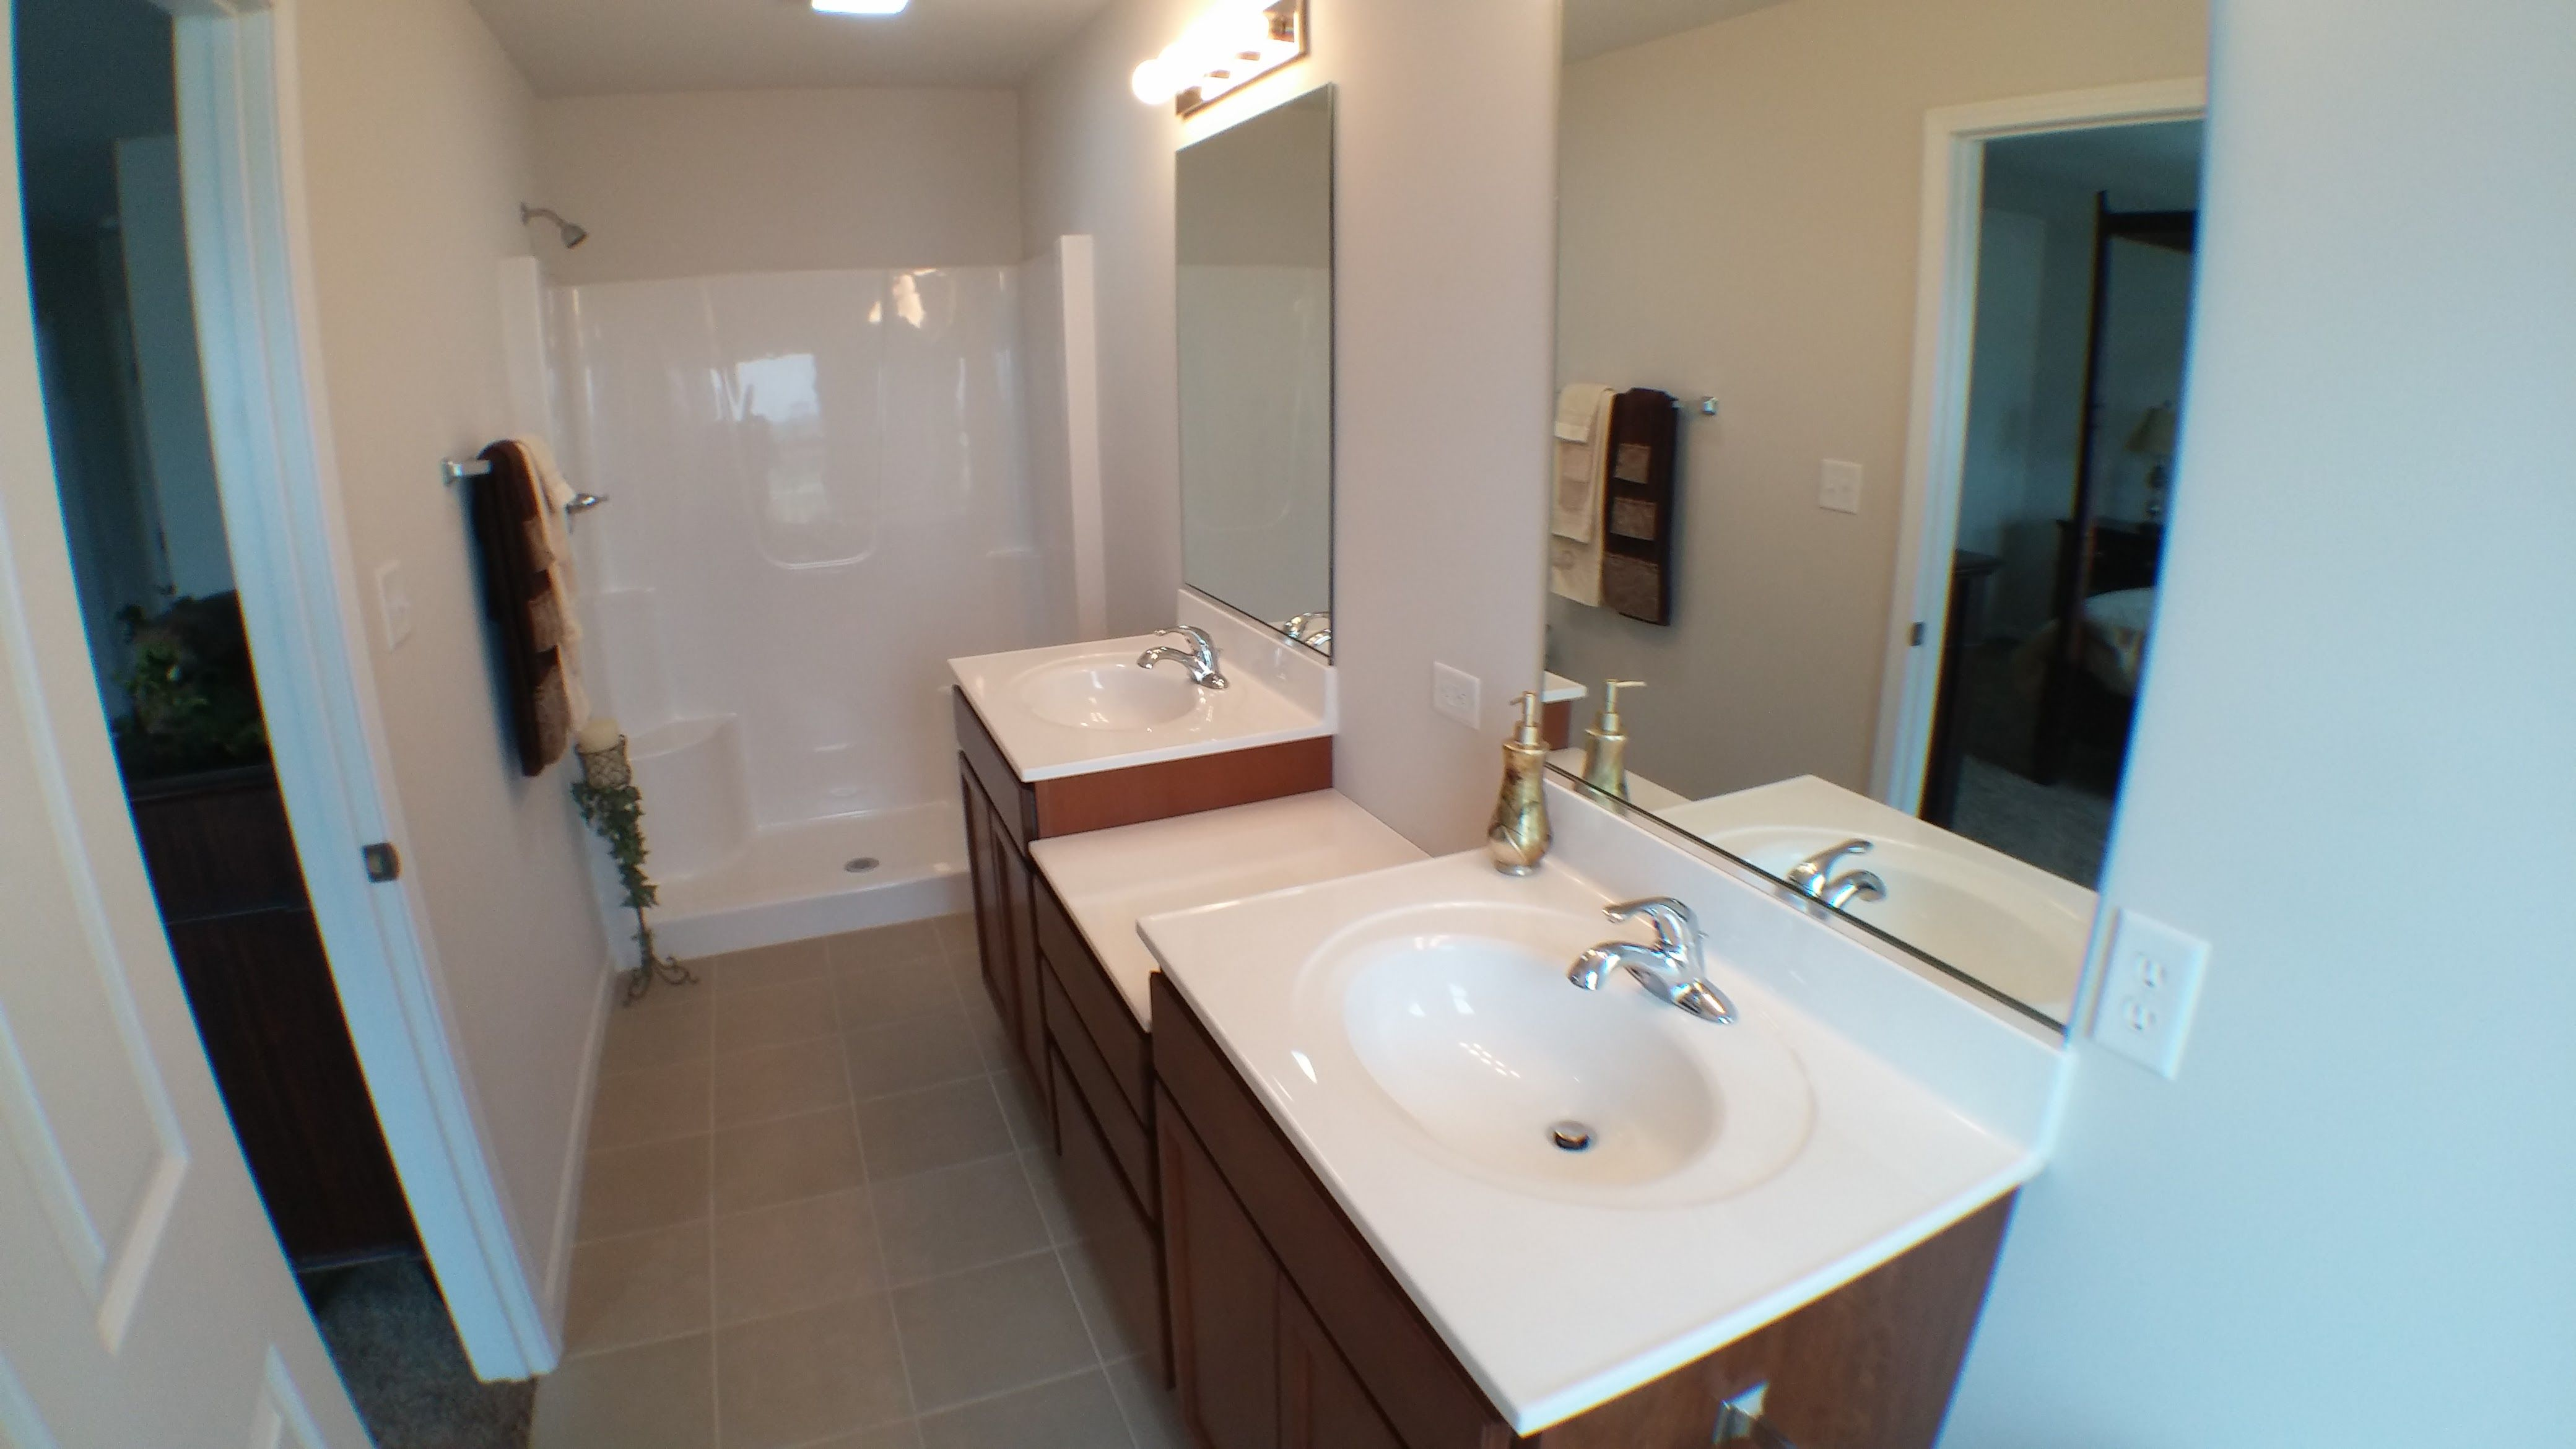 Bathroom featured in the Irvington By Accent Homes Inc. in Gary, IN